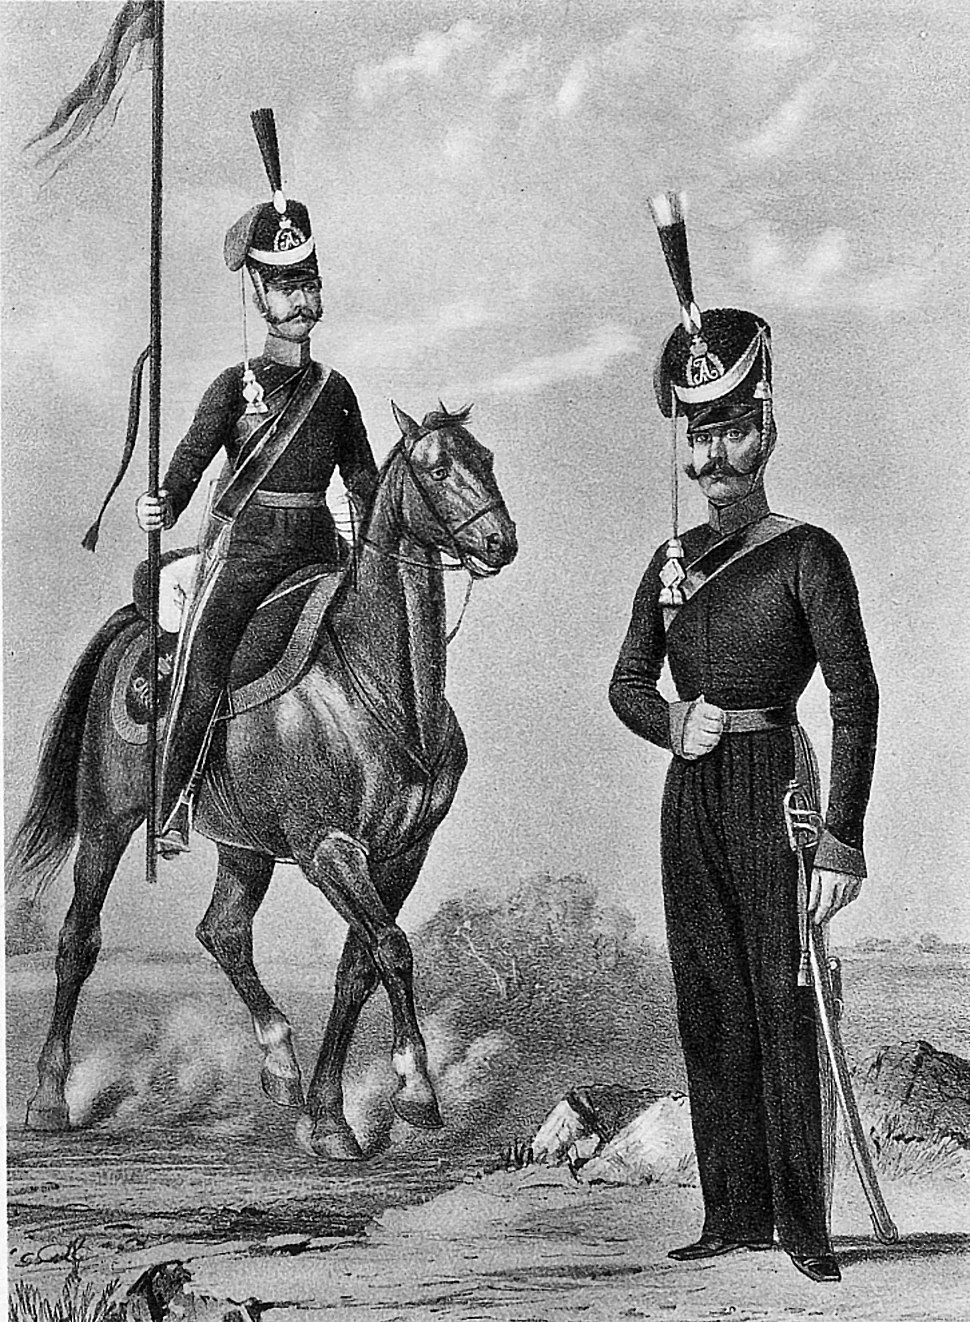 18 2559 Book illustrations of Historical description of the clothes and weapons of Russian troops